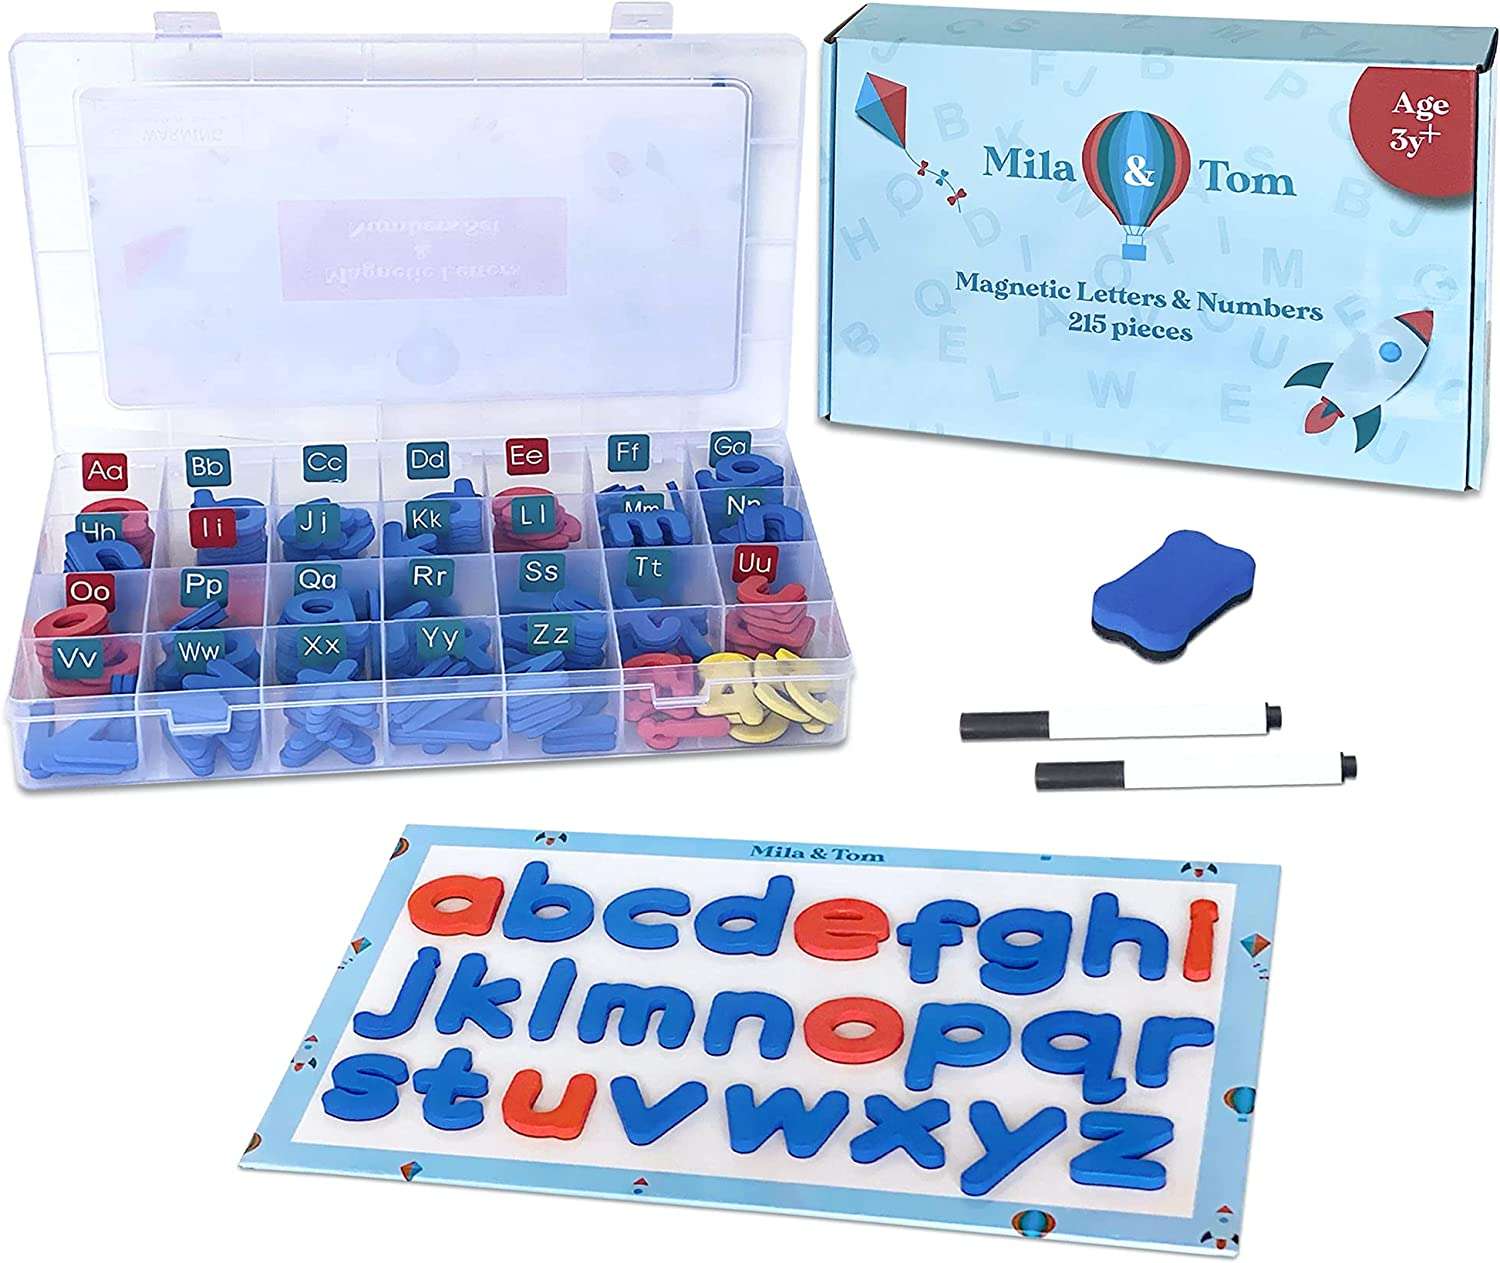 Magnetic Letters and Numbers Set - Foam Letter Kit +White Board - Lowercase & Uppercase Magnets for Kids - Learn ABC &Writing - Moveable Alphabet Set for Classroom Learning with Plastic Box